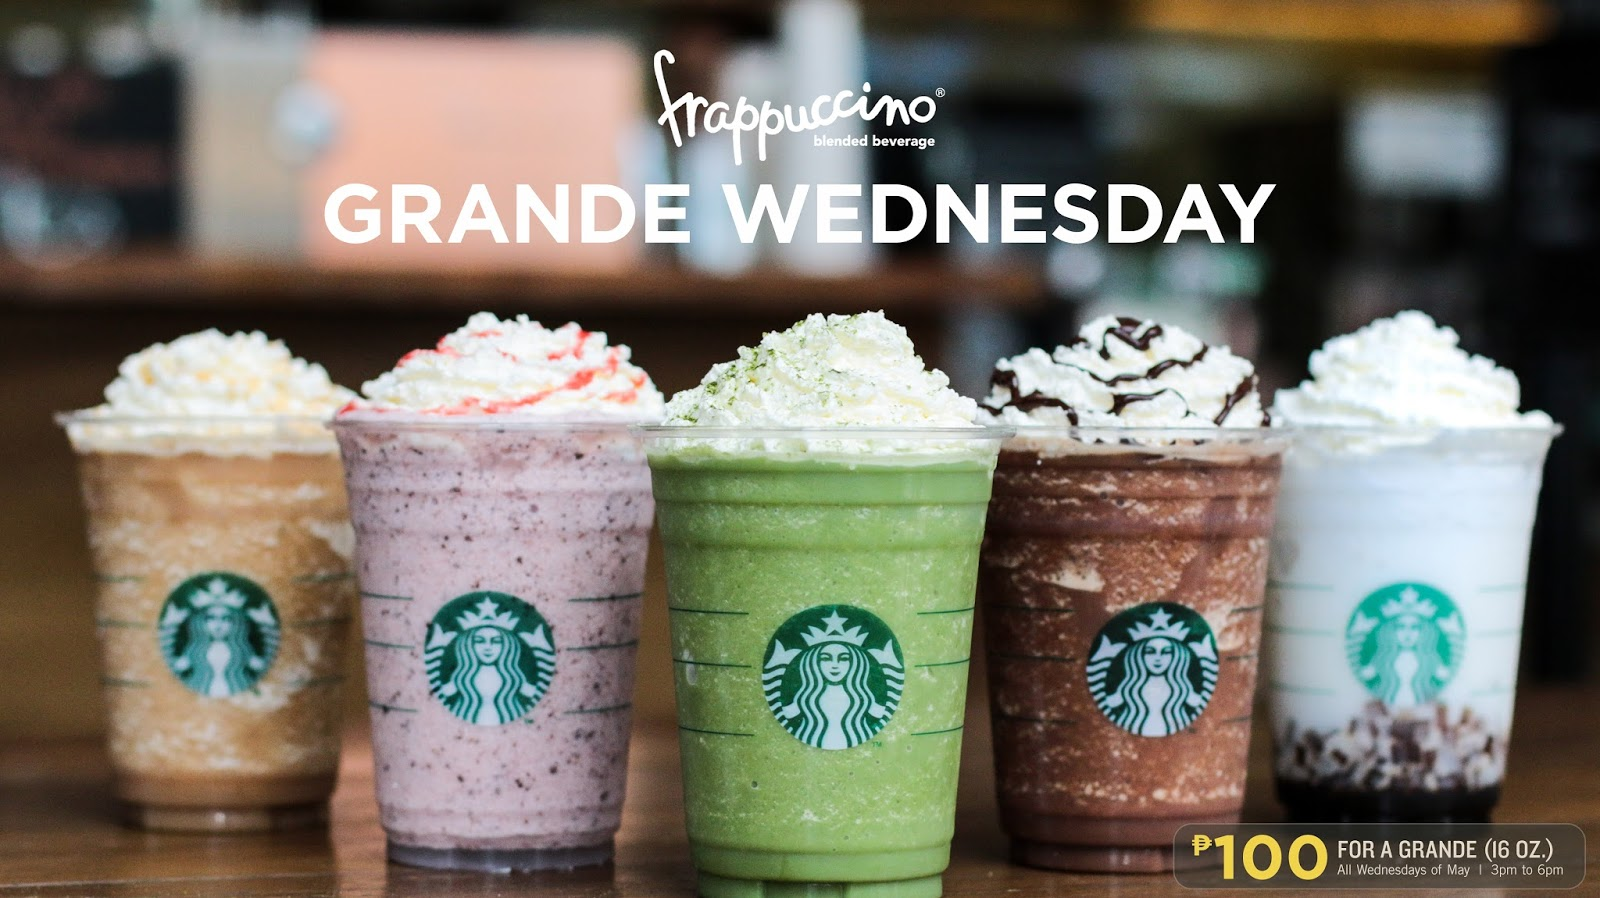 Starbucks Grande Wednesday is back with 5 new summer flavors